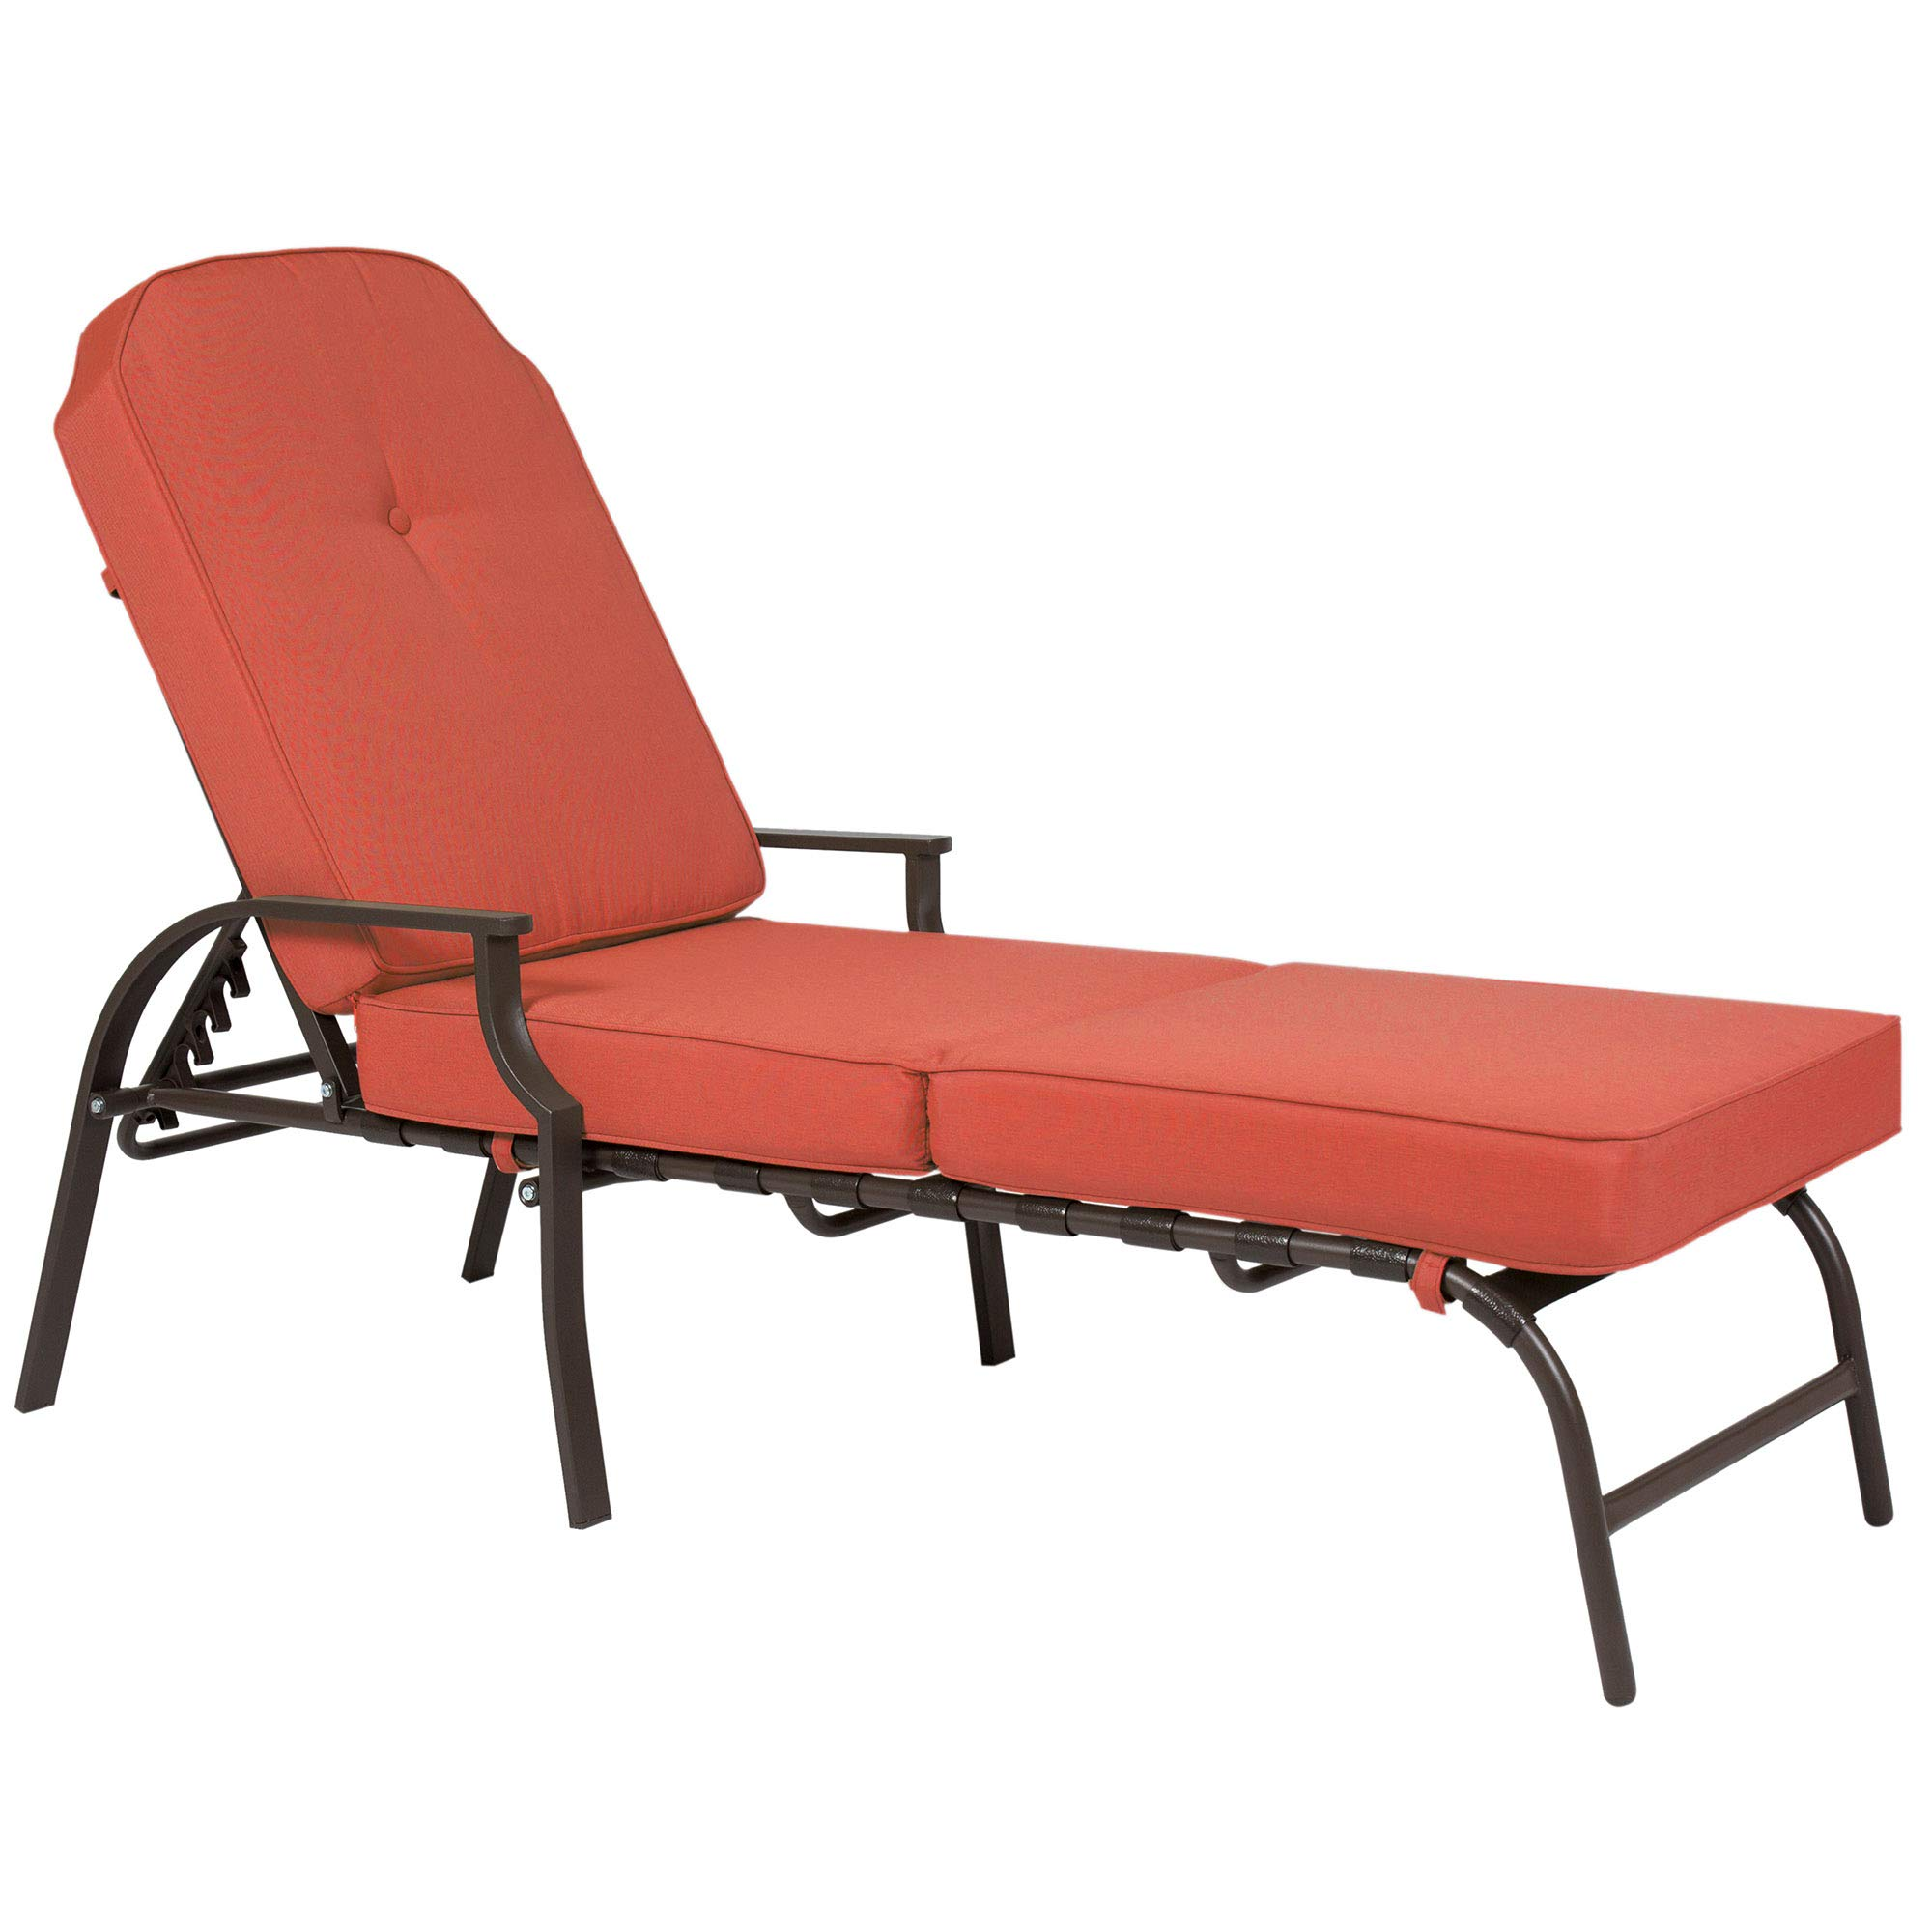 Best Choice Products Outdoor Chaise Lounge Chair W/ Cushion Pool Patio Furniture Rustic Red by Best Choice Products